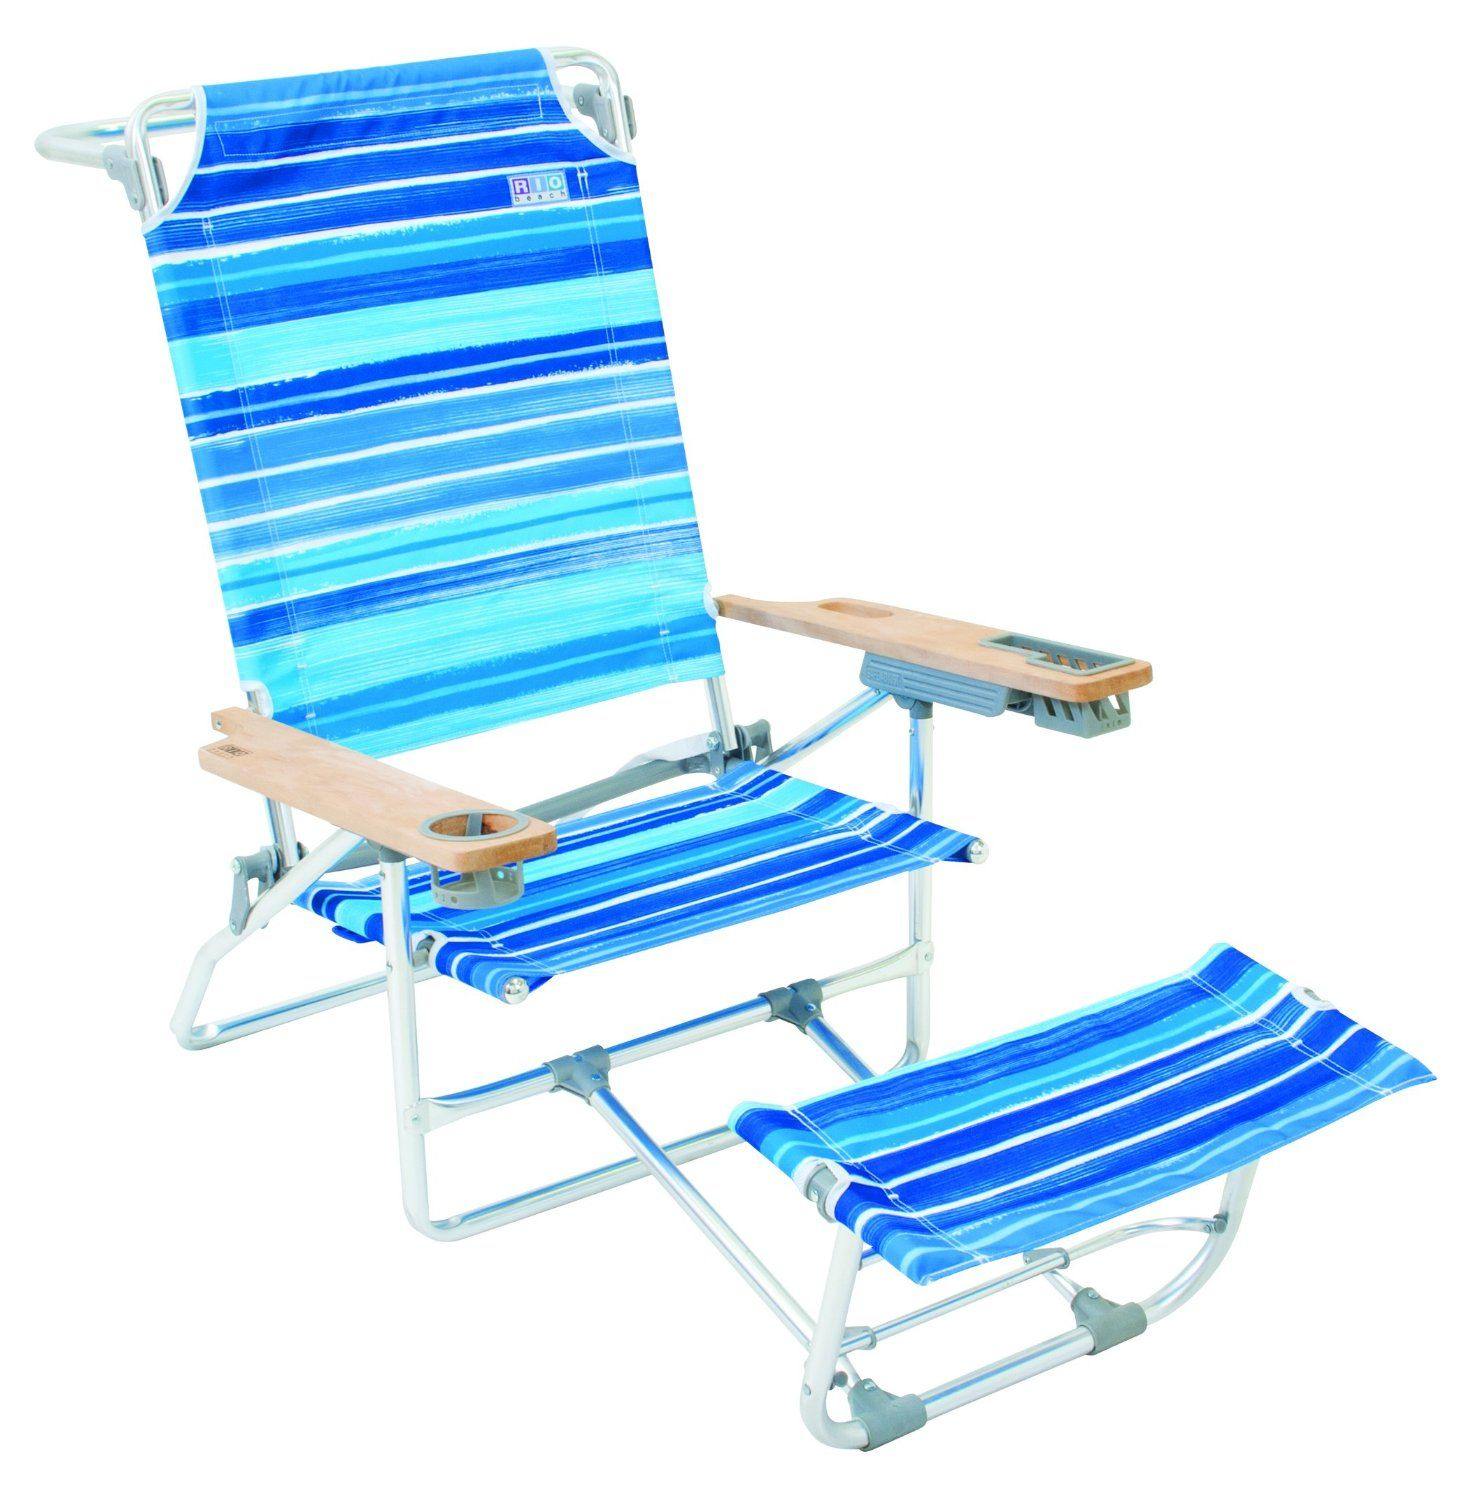 Pin by Florence York on Gear stuff in 2020 Beach chairs